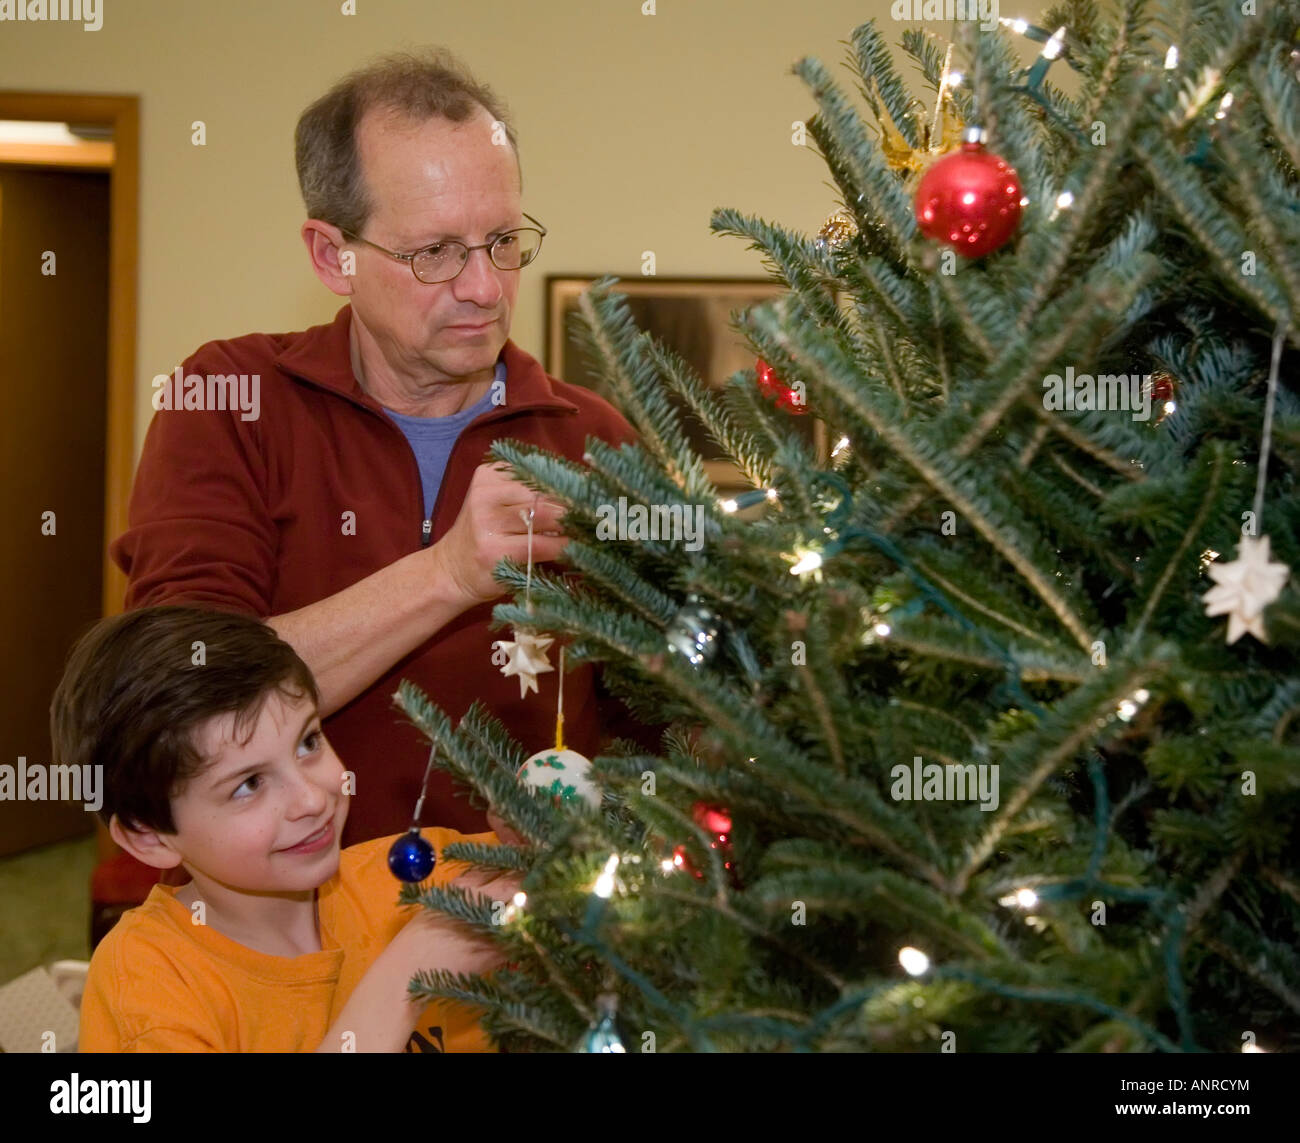 Bridgewater Virginia Father and son decorate a Christmas tree - Stock Image